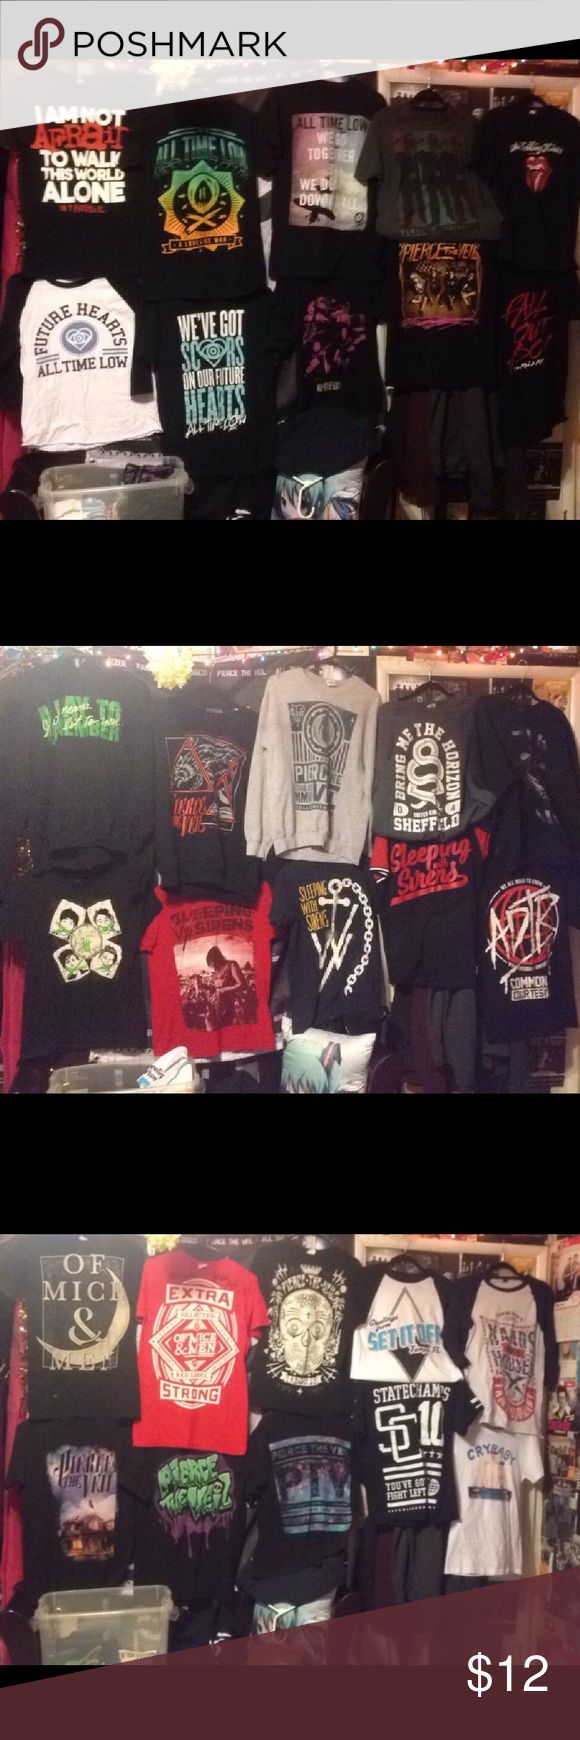 Band Merch I want to sell a bunch of my old band shirts that've been sitting aroundThe Of Mice And Men Moon Shirt has a small bleach stain on the bottom. The red OMAM shirt is signed. 2 OMAM 1 Hands Like Houses 3 Sleeping With Sirens 7 Pierce The Veil My Chemical Romance SOLD 5 All Time Low 2 A Day To Remember 1 5SOS 1 Falling In Reverse 1 Set It Off 1 State Champs 1 Melanie Martinez w/tags 1Fall Out Boy 1Rolling Stones.Only selling bracelets in pairs of 3 $310 for all shirts/sweatshirts…